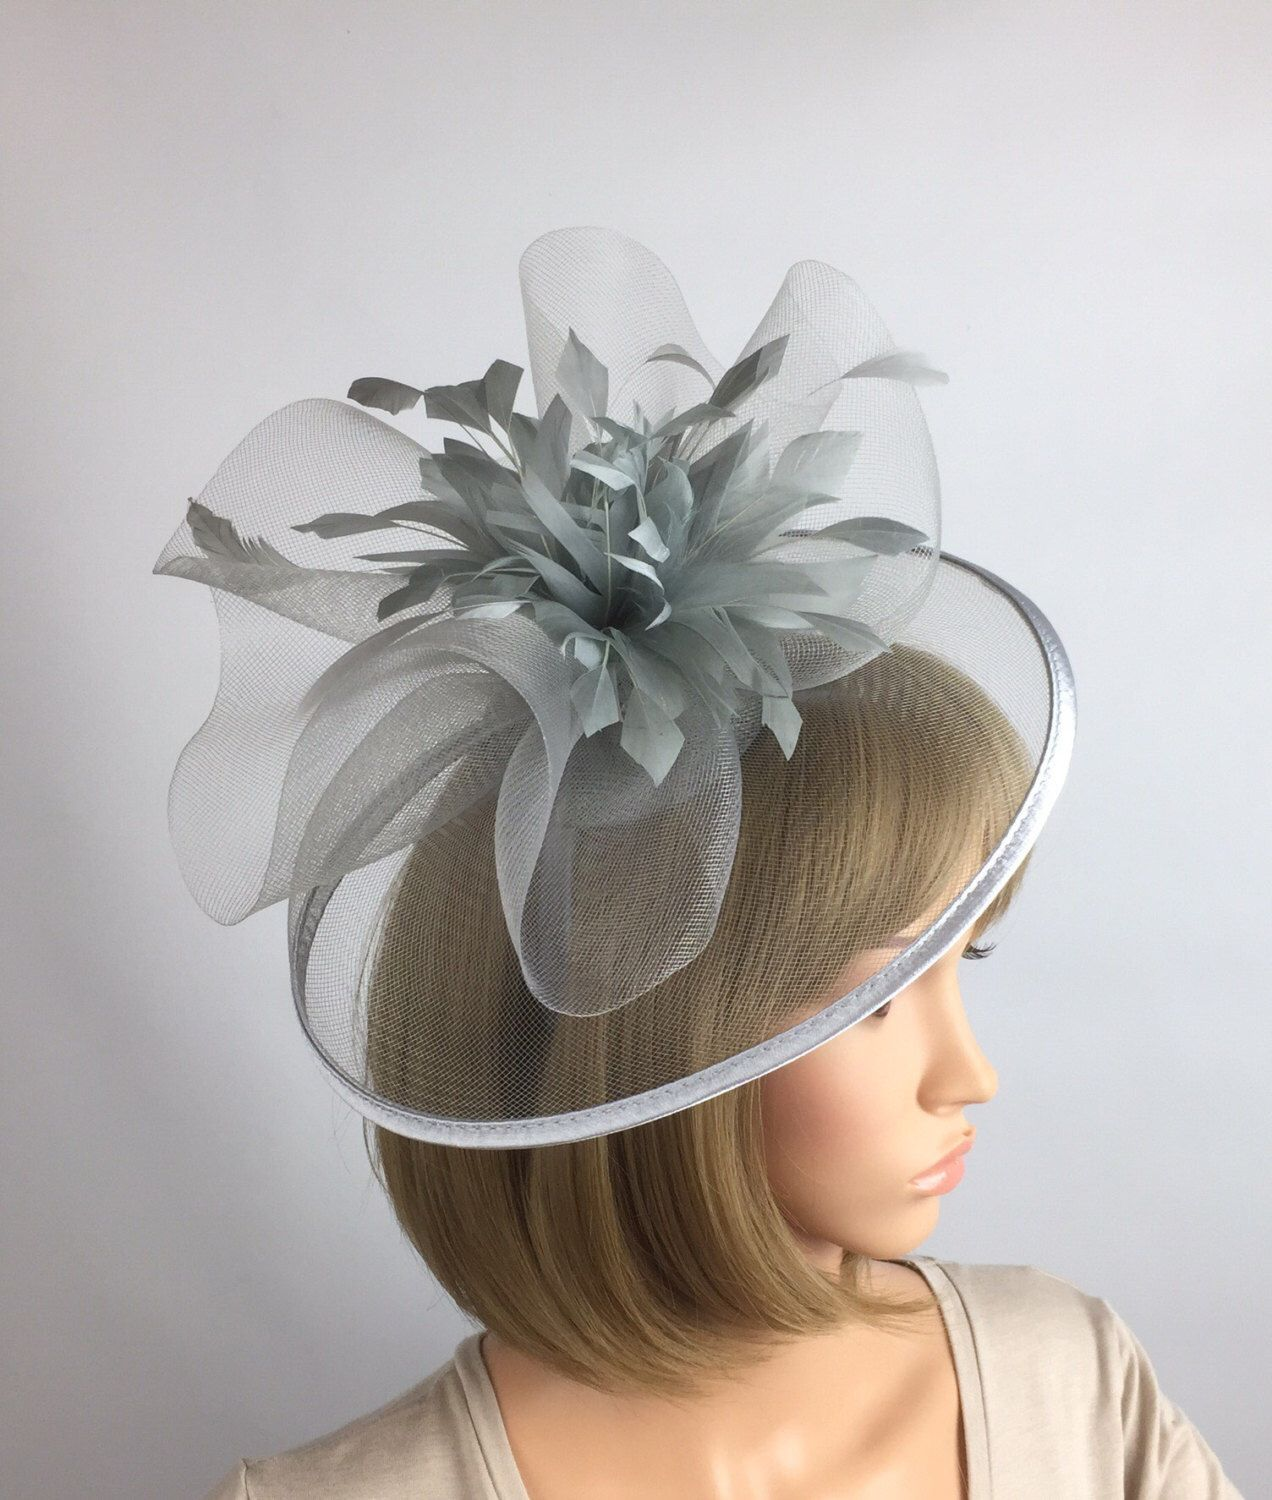 d89182ae8ba4a Silver Fascinator Grey fascinator on Aliceband Hairband mother of Bride  Wedding Ascot races occasion